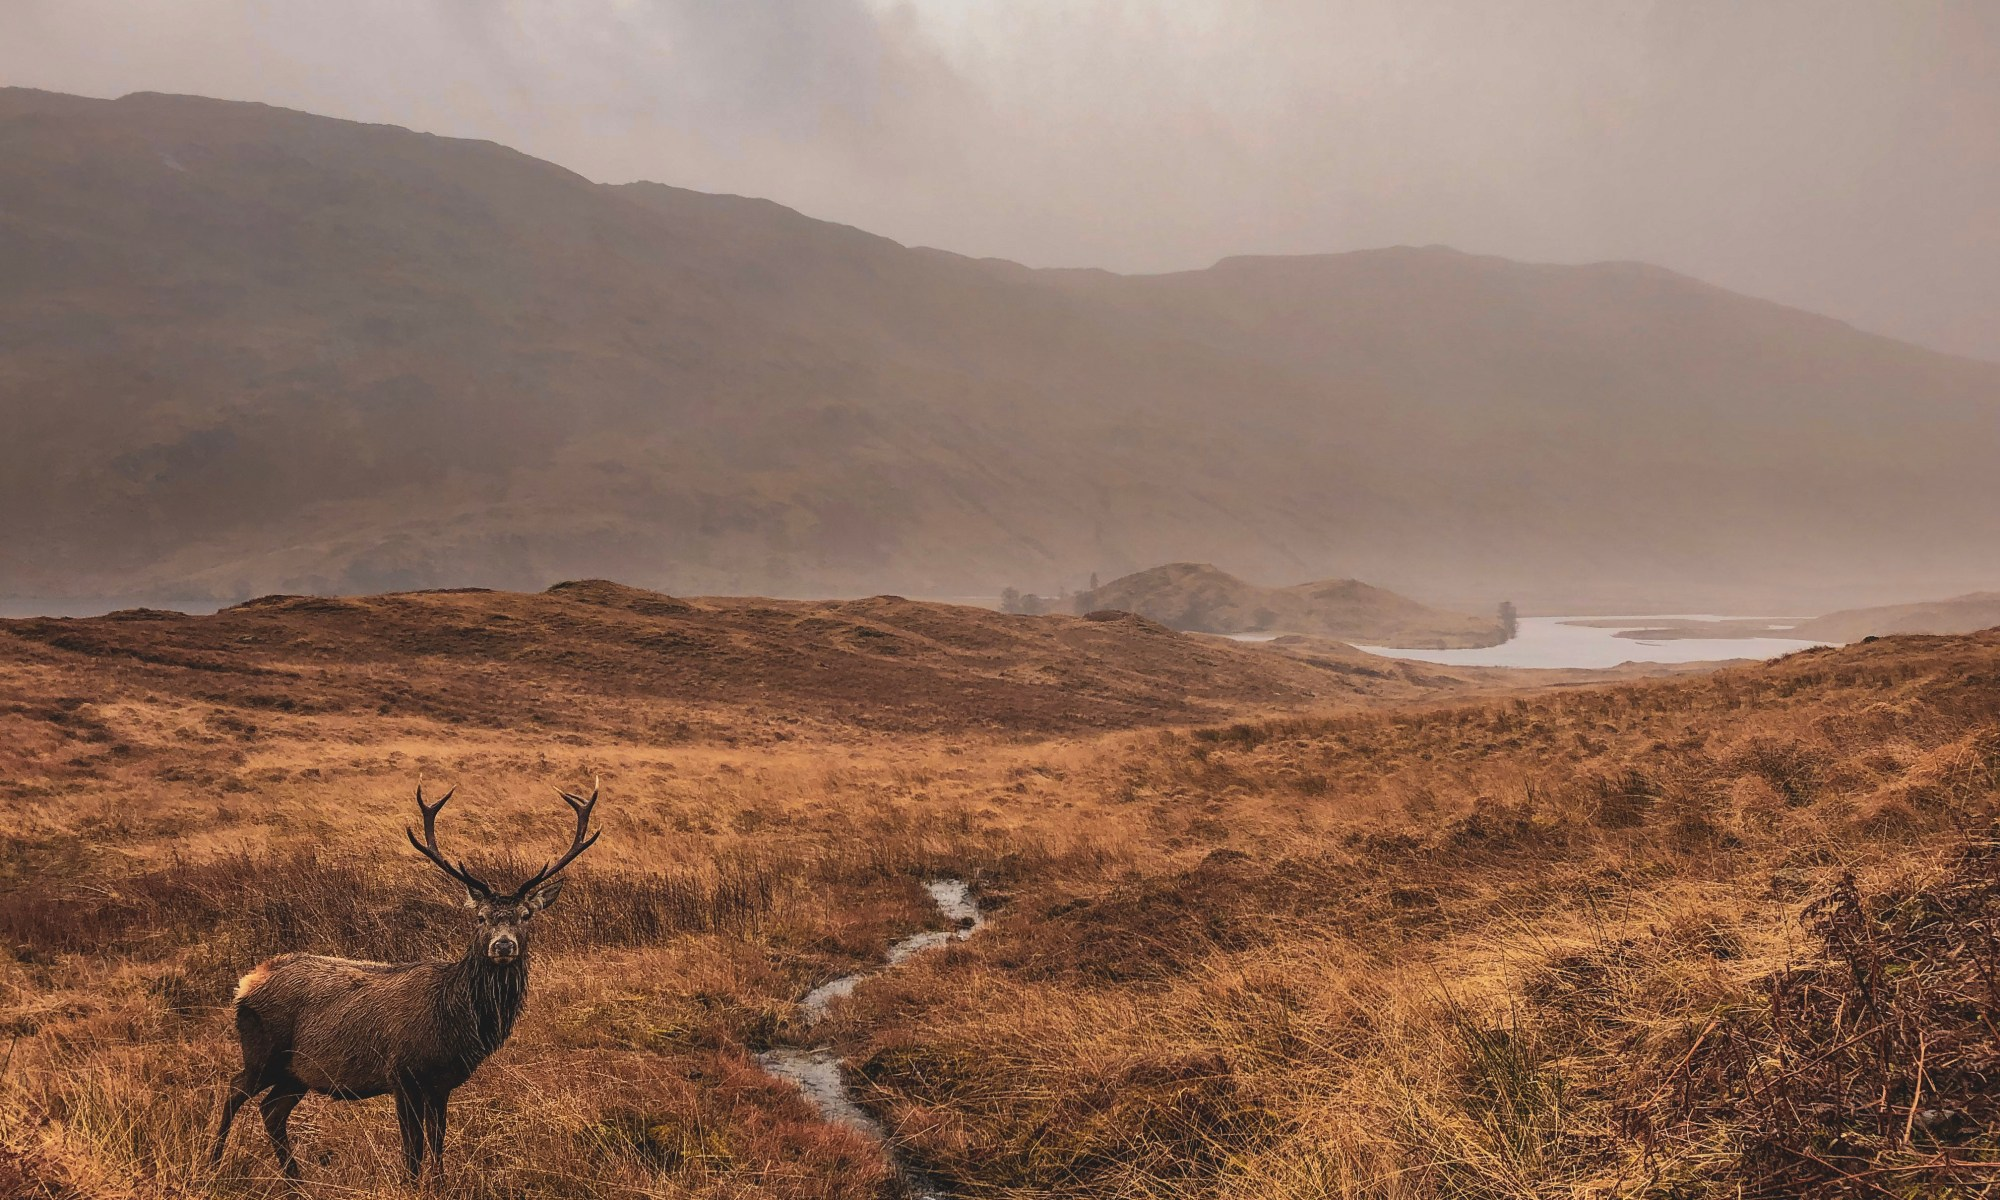 wild knoydart stag, staring at camera in front of mountains